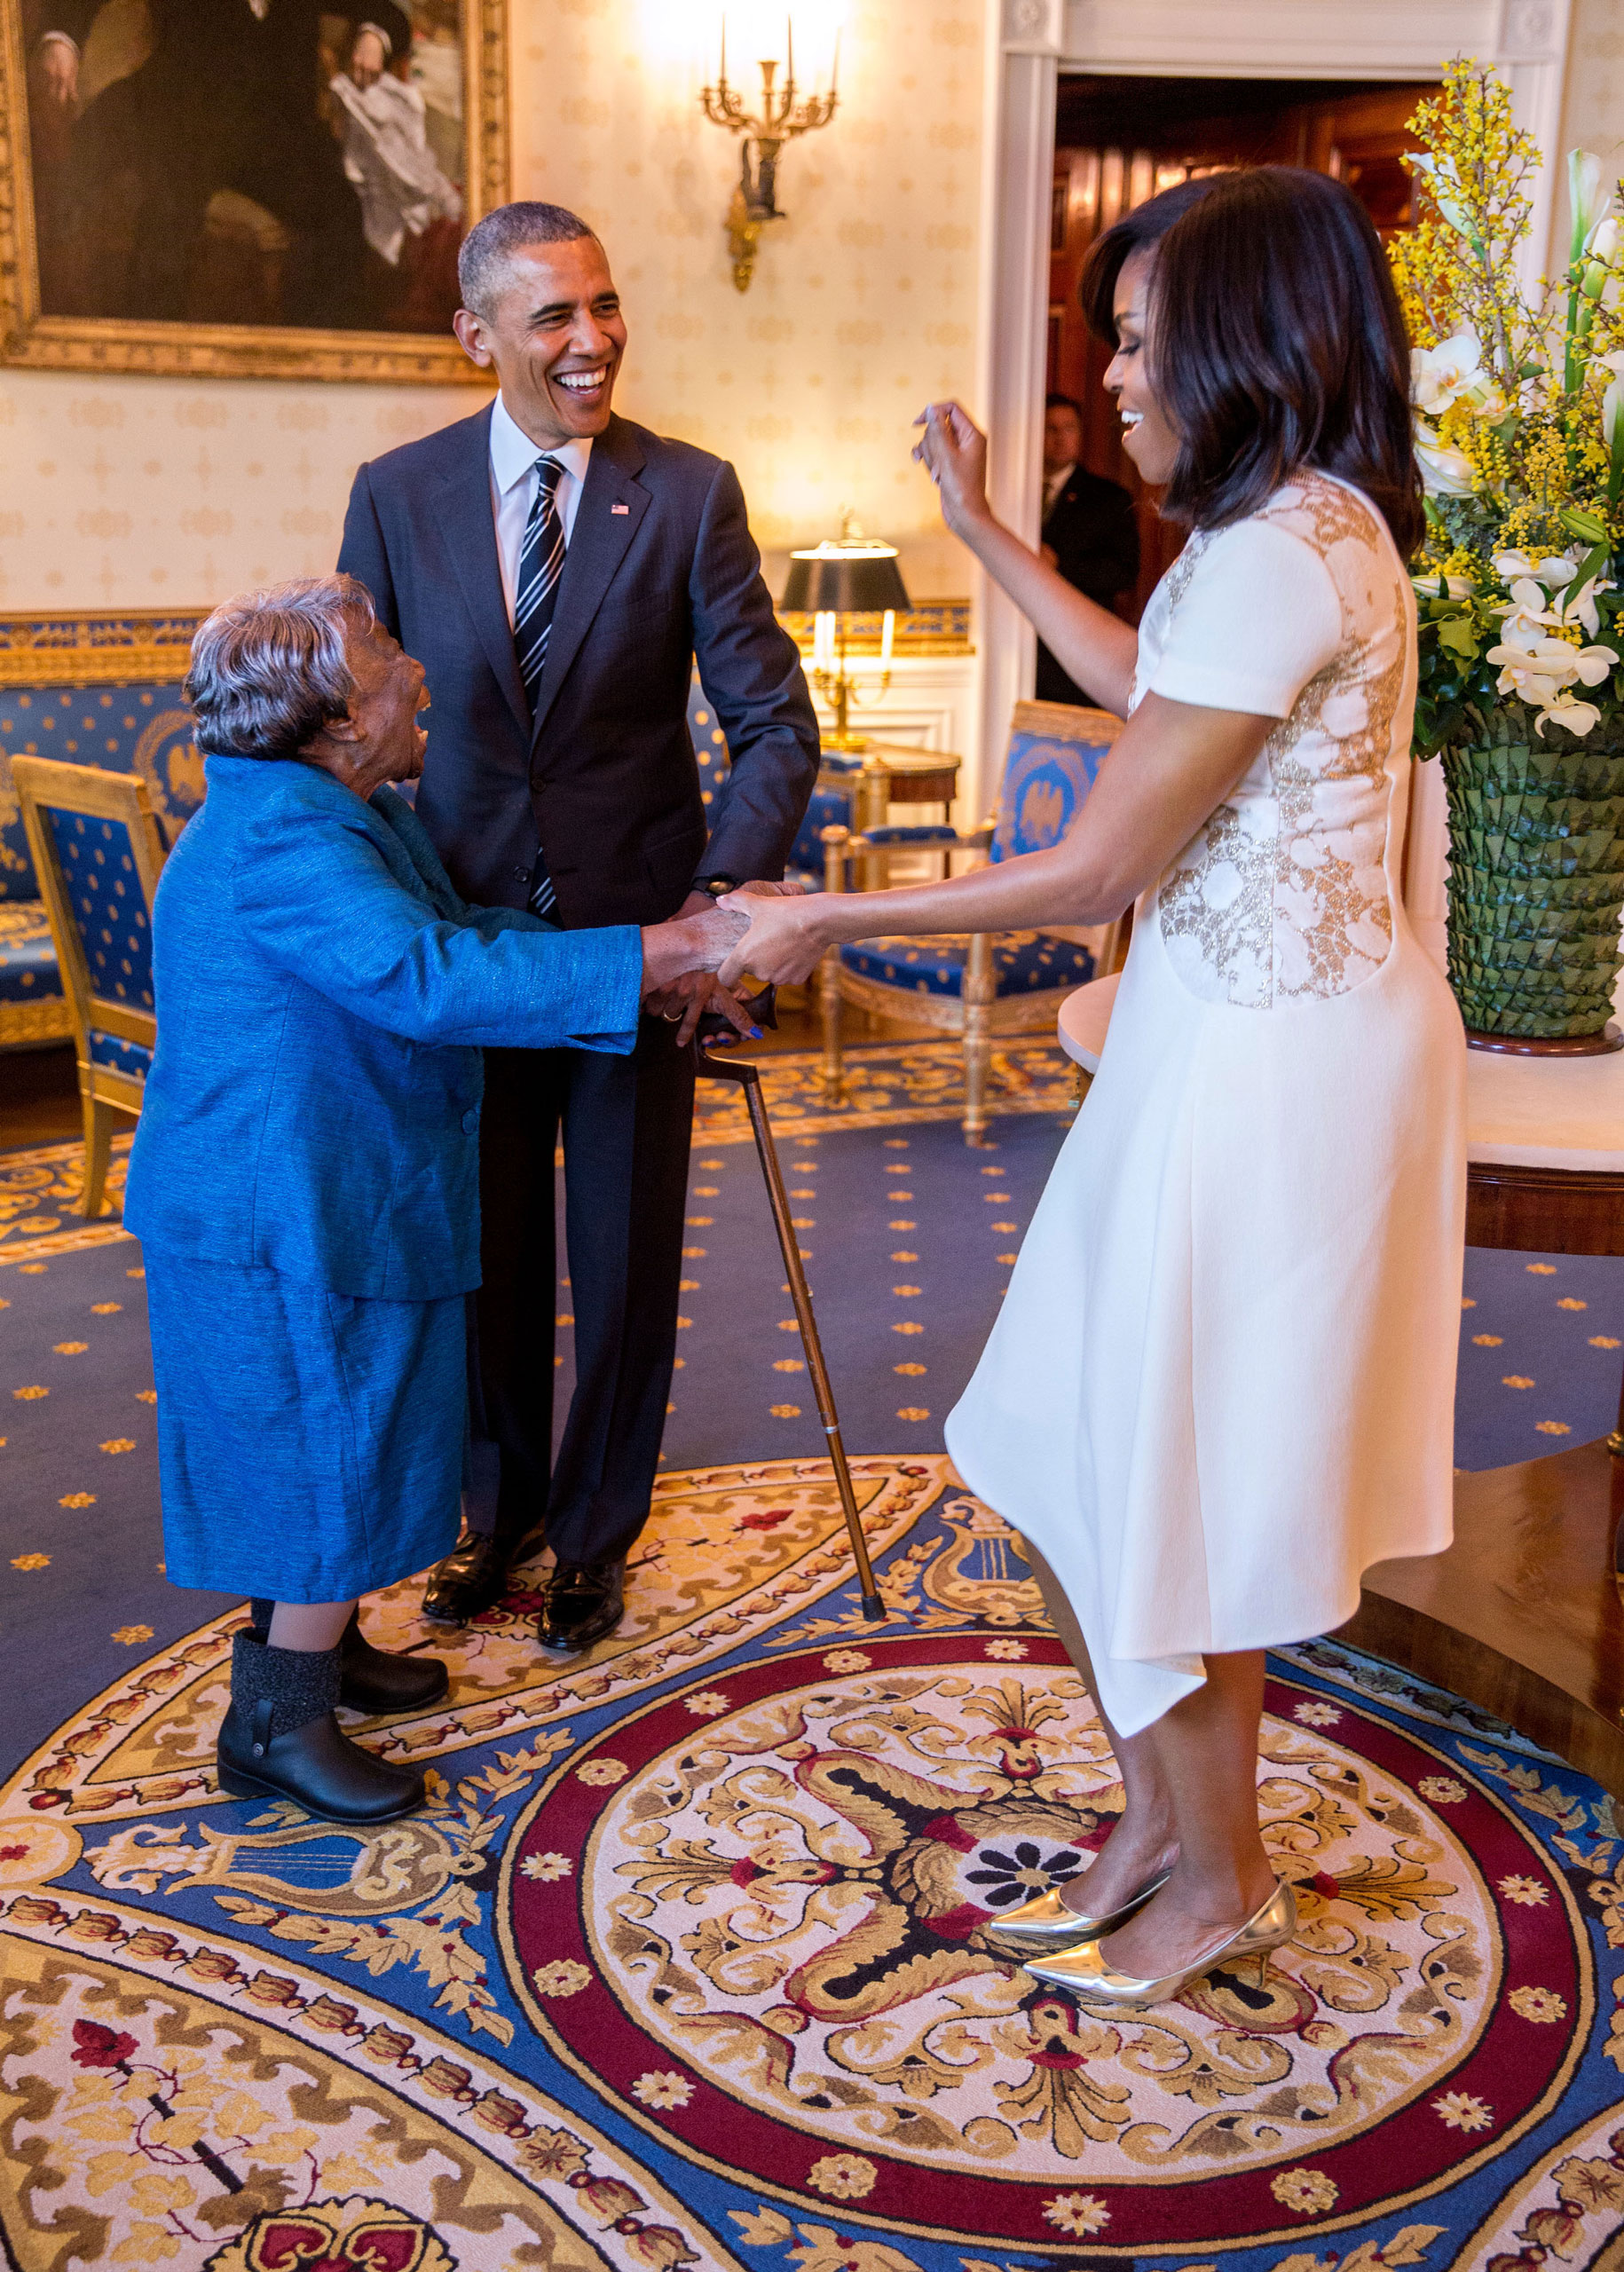 President Barack Obama watches First Lady Michelle Obama dance with 106-Year-Old Virginia McLaurin in the Blue Room of the White House prior to a reception celebrating African American History Month, Feb. 18, 2016.